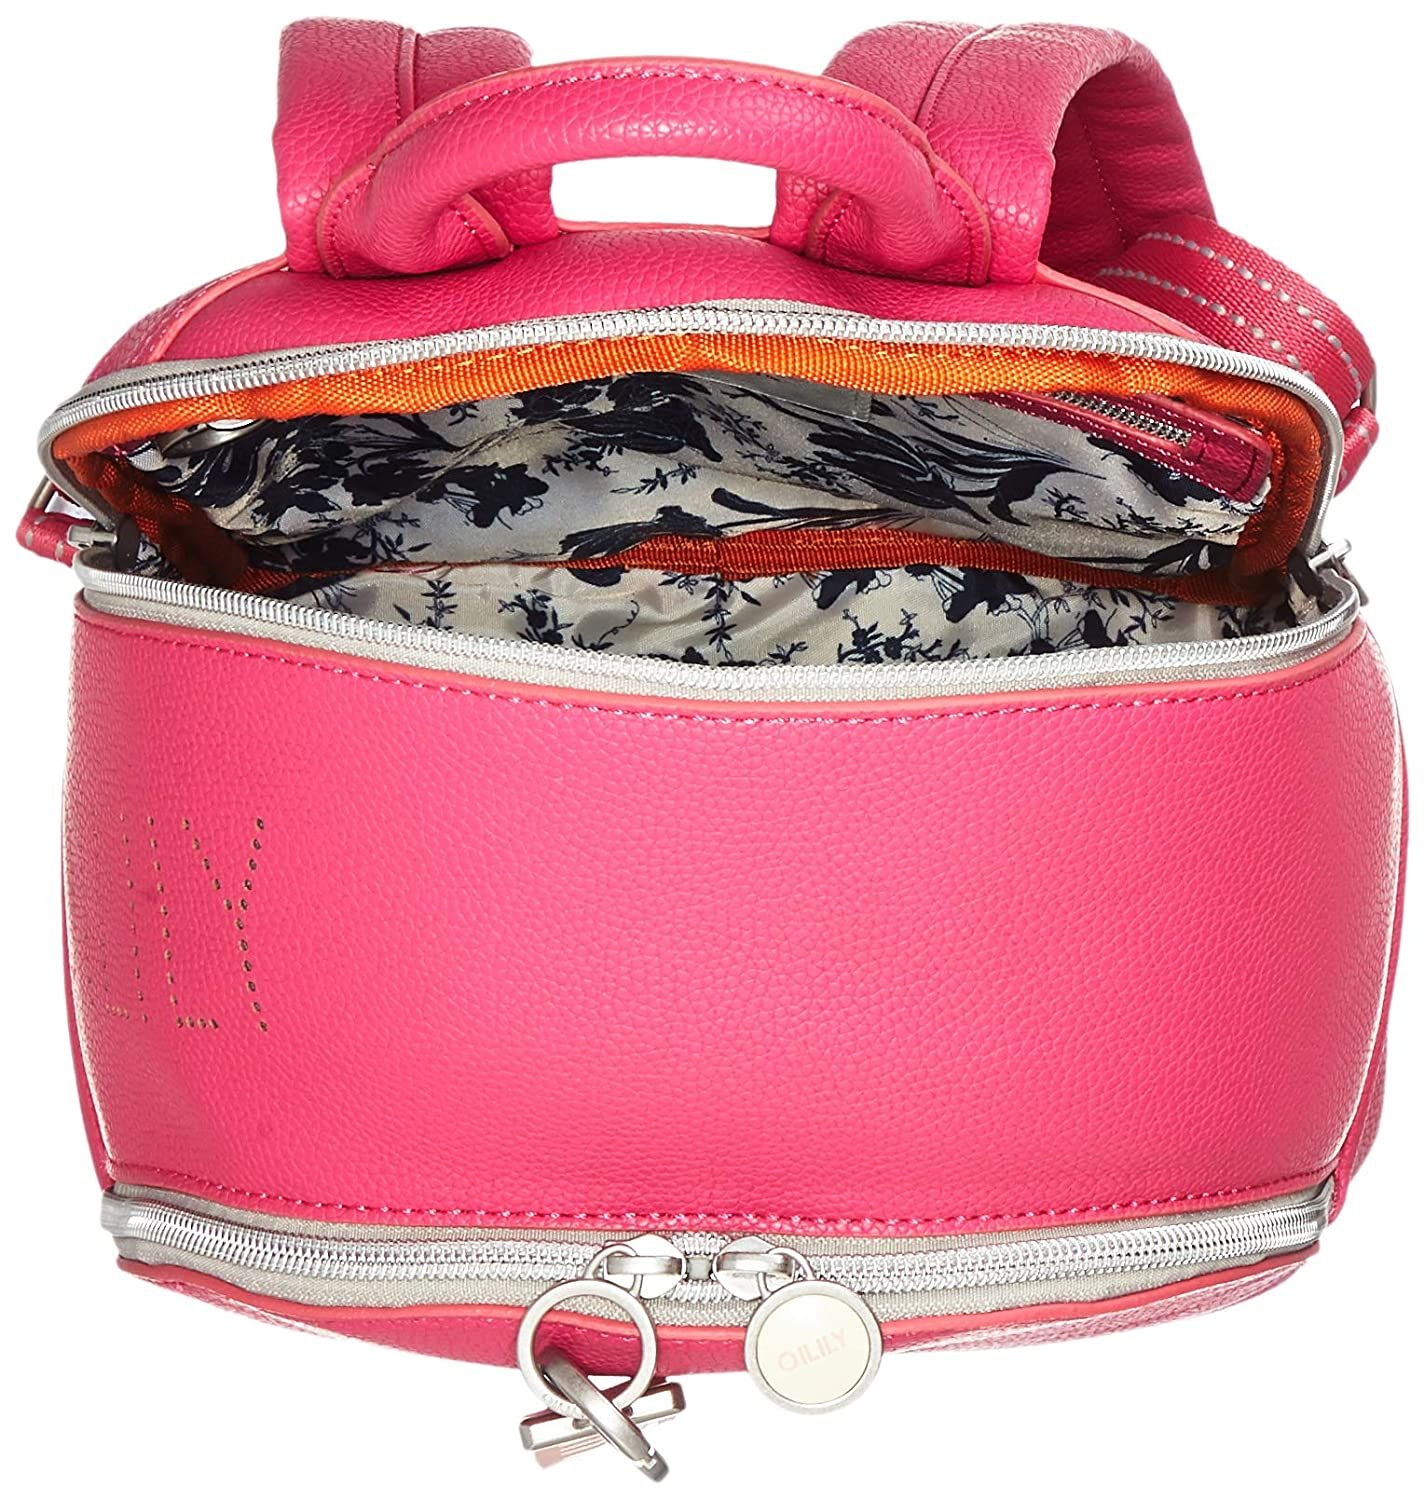 Oilily - Airy Backpack Mvz, Mochilas Mujer, Rosa (Pink (Pink)), 13.0x33.0x22.0 cm (B x H T): Amazon.es: Zapatos y complementos